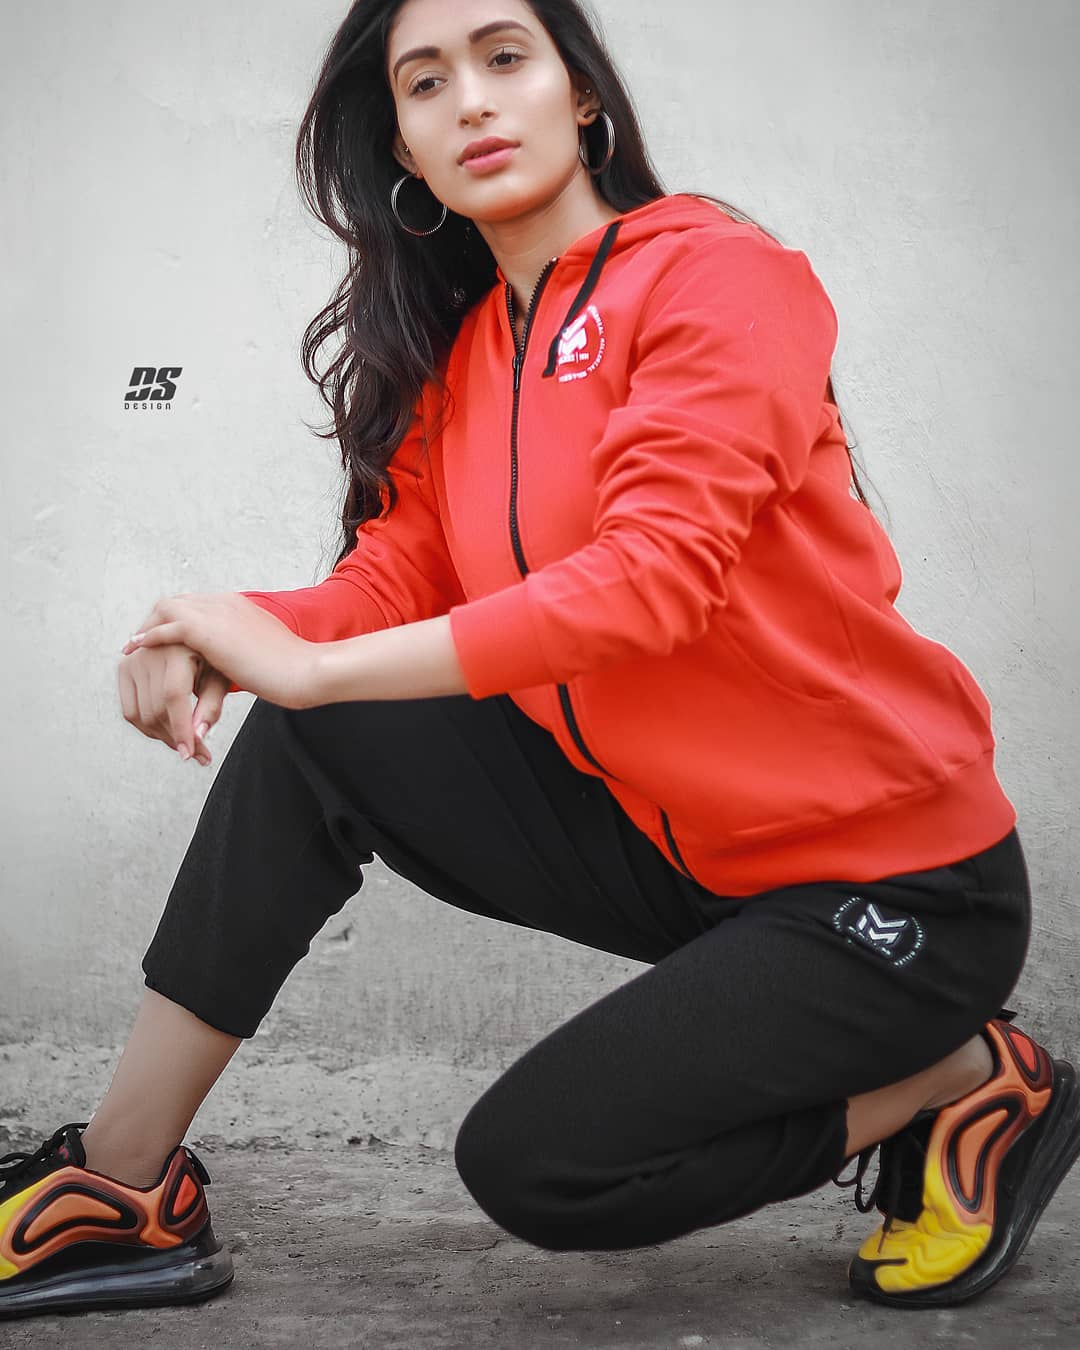 Anjali Kapoor is a Rising Star in the Universe of Fitness Industry